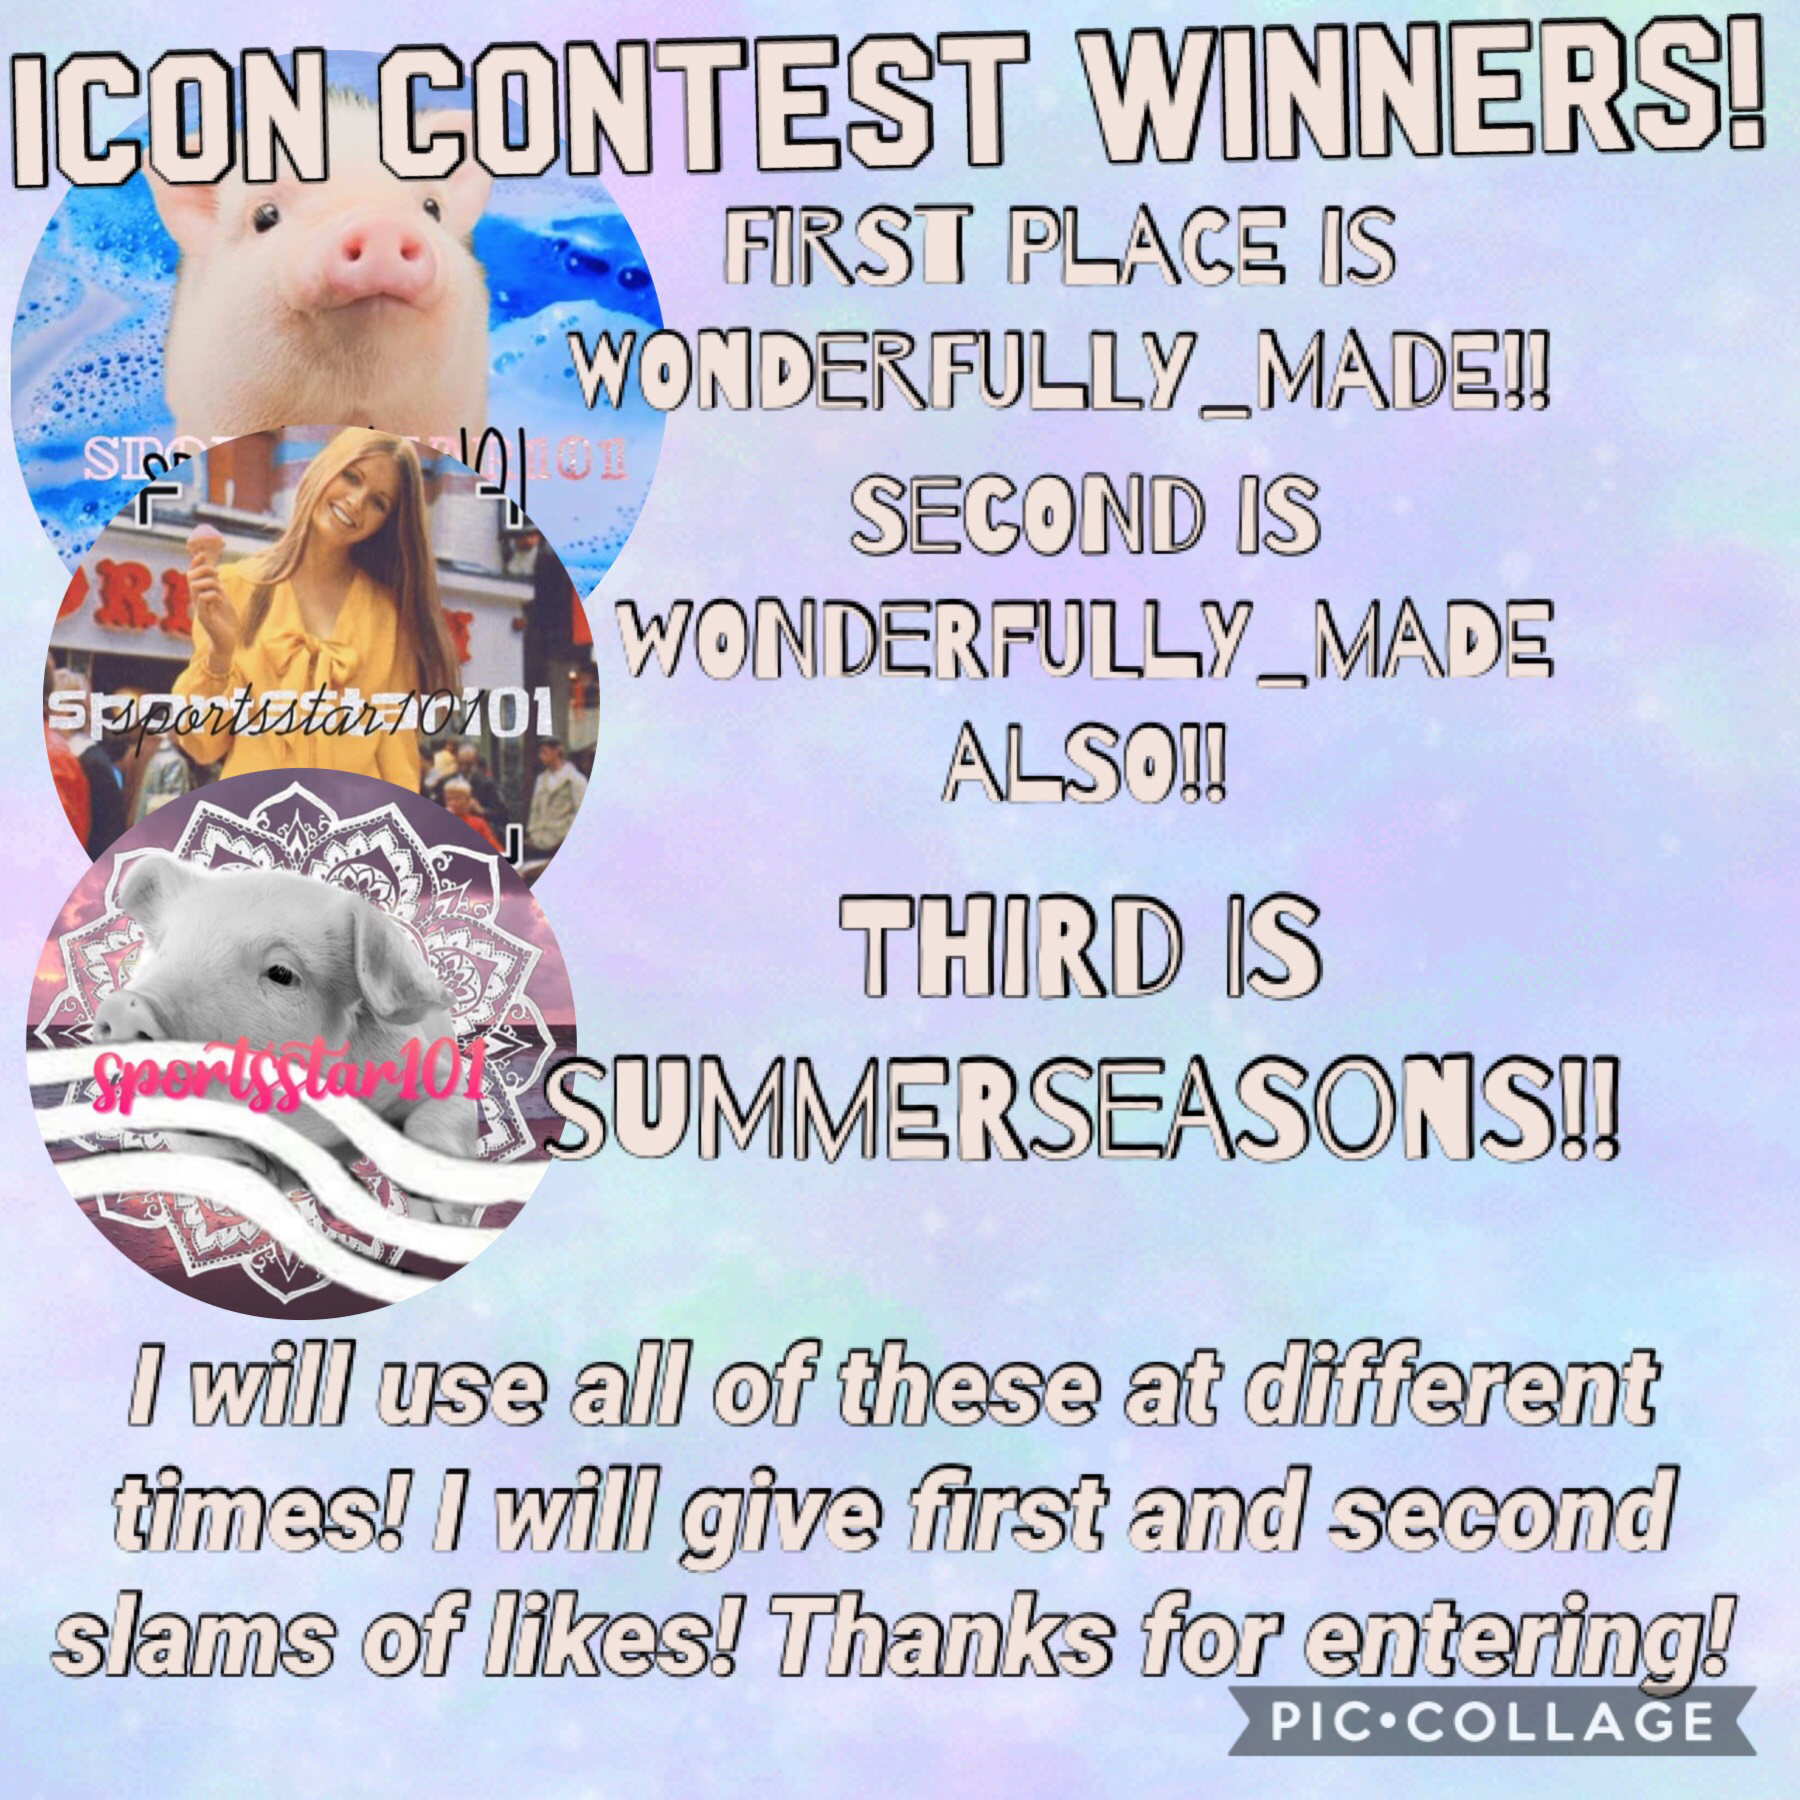 Thank you so much to all of the people who entered!